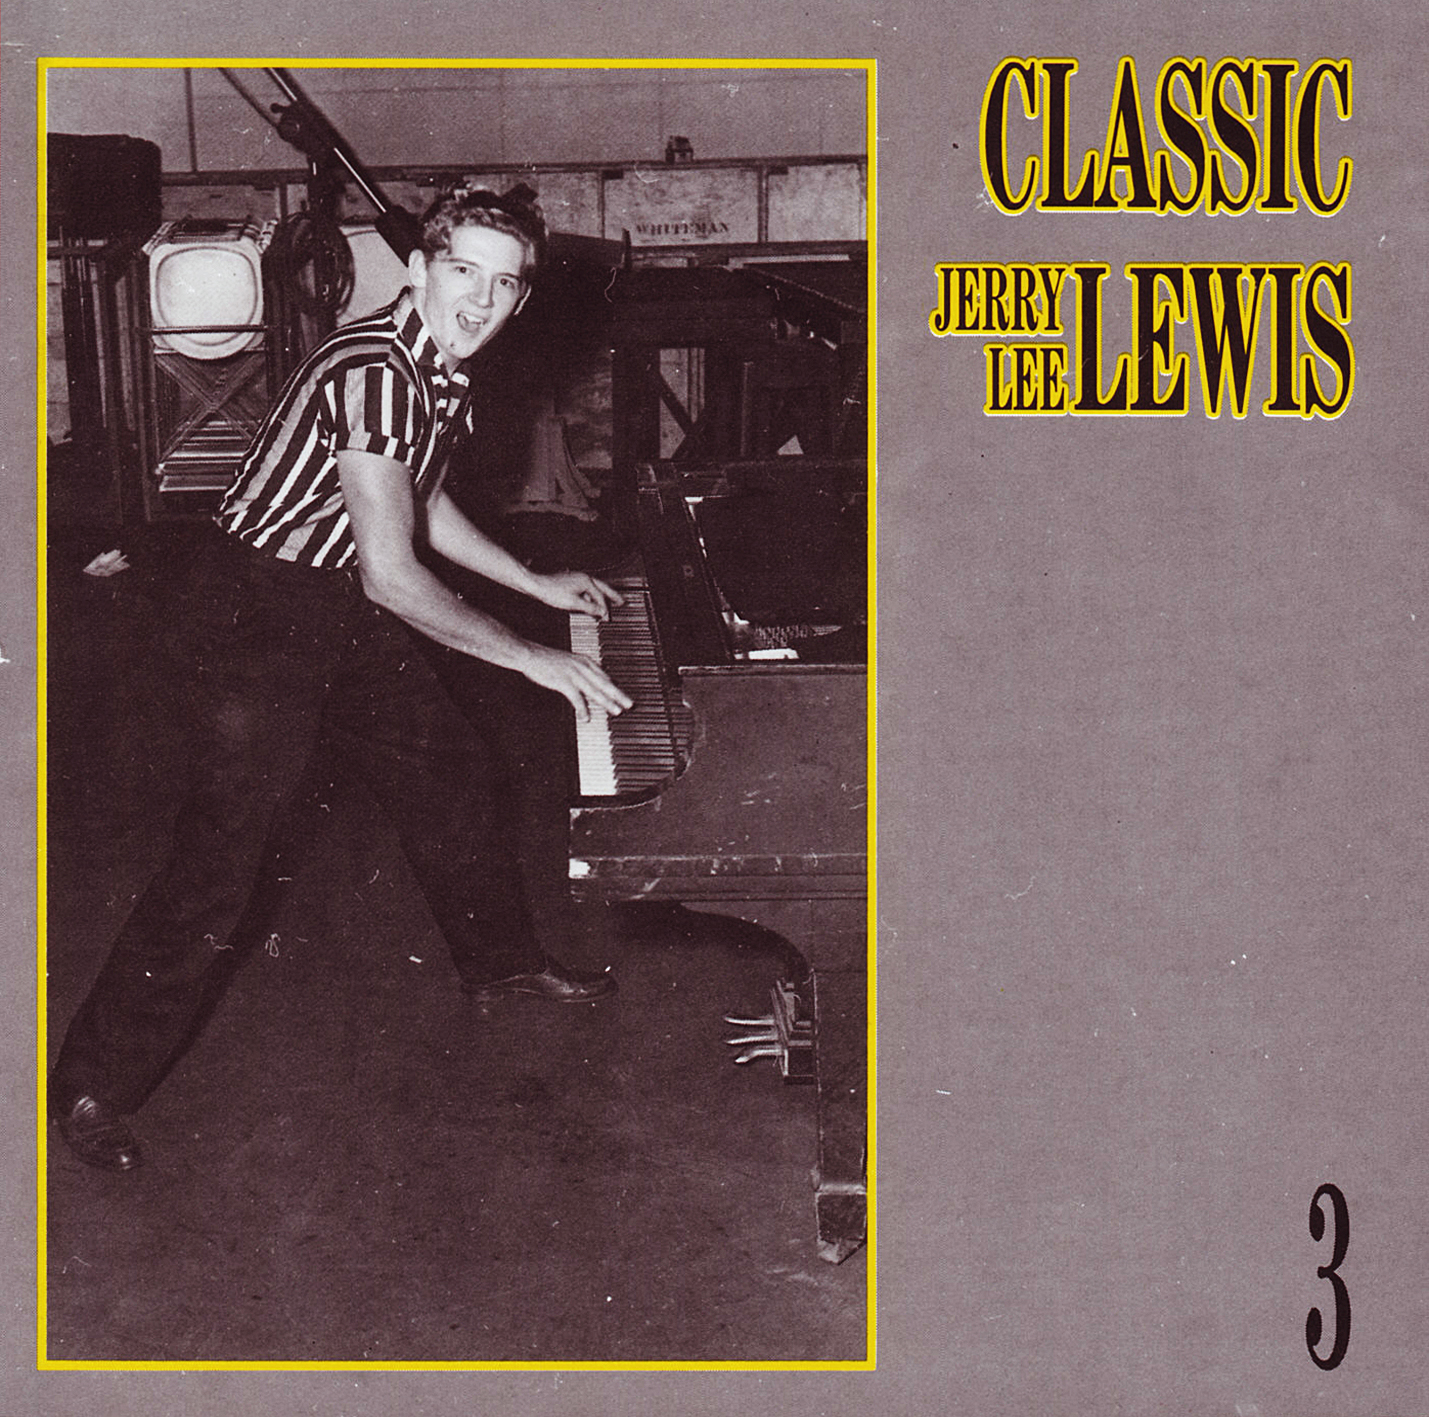 Jerry Lee Lewis - Classic (CD 3) - Front